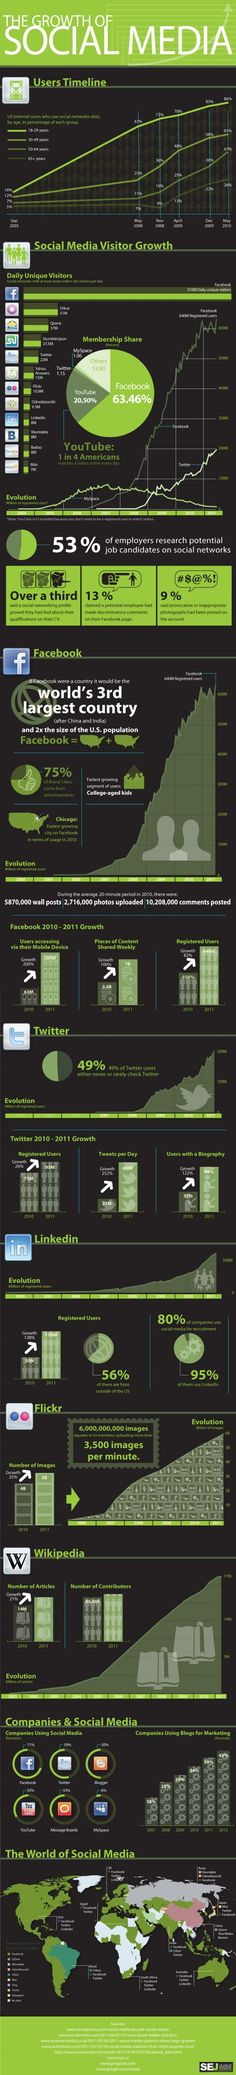 Inforgraphic: The growth of social media #sm #infographic